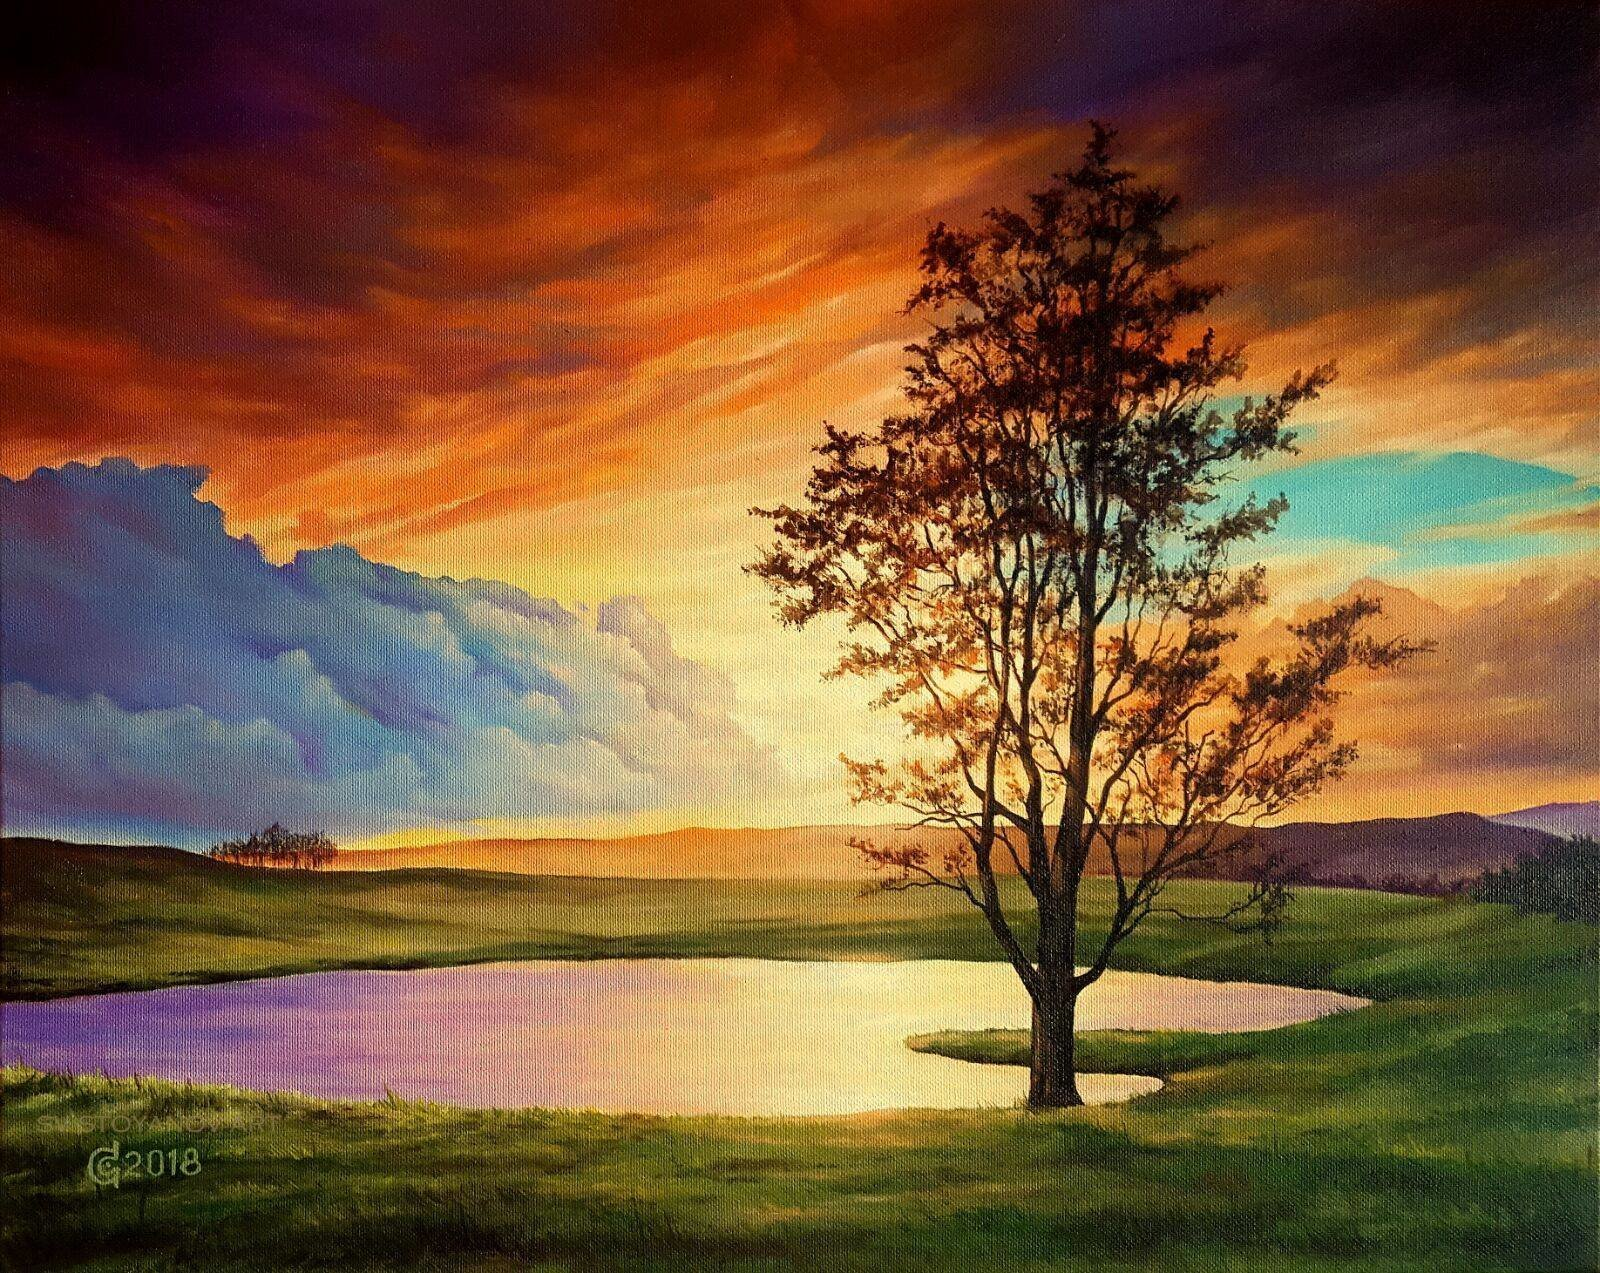 Svetoslav Stoyanov: 'piece of heaven', 2018 Oil Painting, Landscape. Artist Description: landscape, sunset, realism, fine art, original oil painting, blue clouds, orange sky, lake, tree...